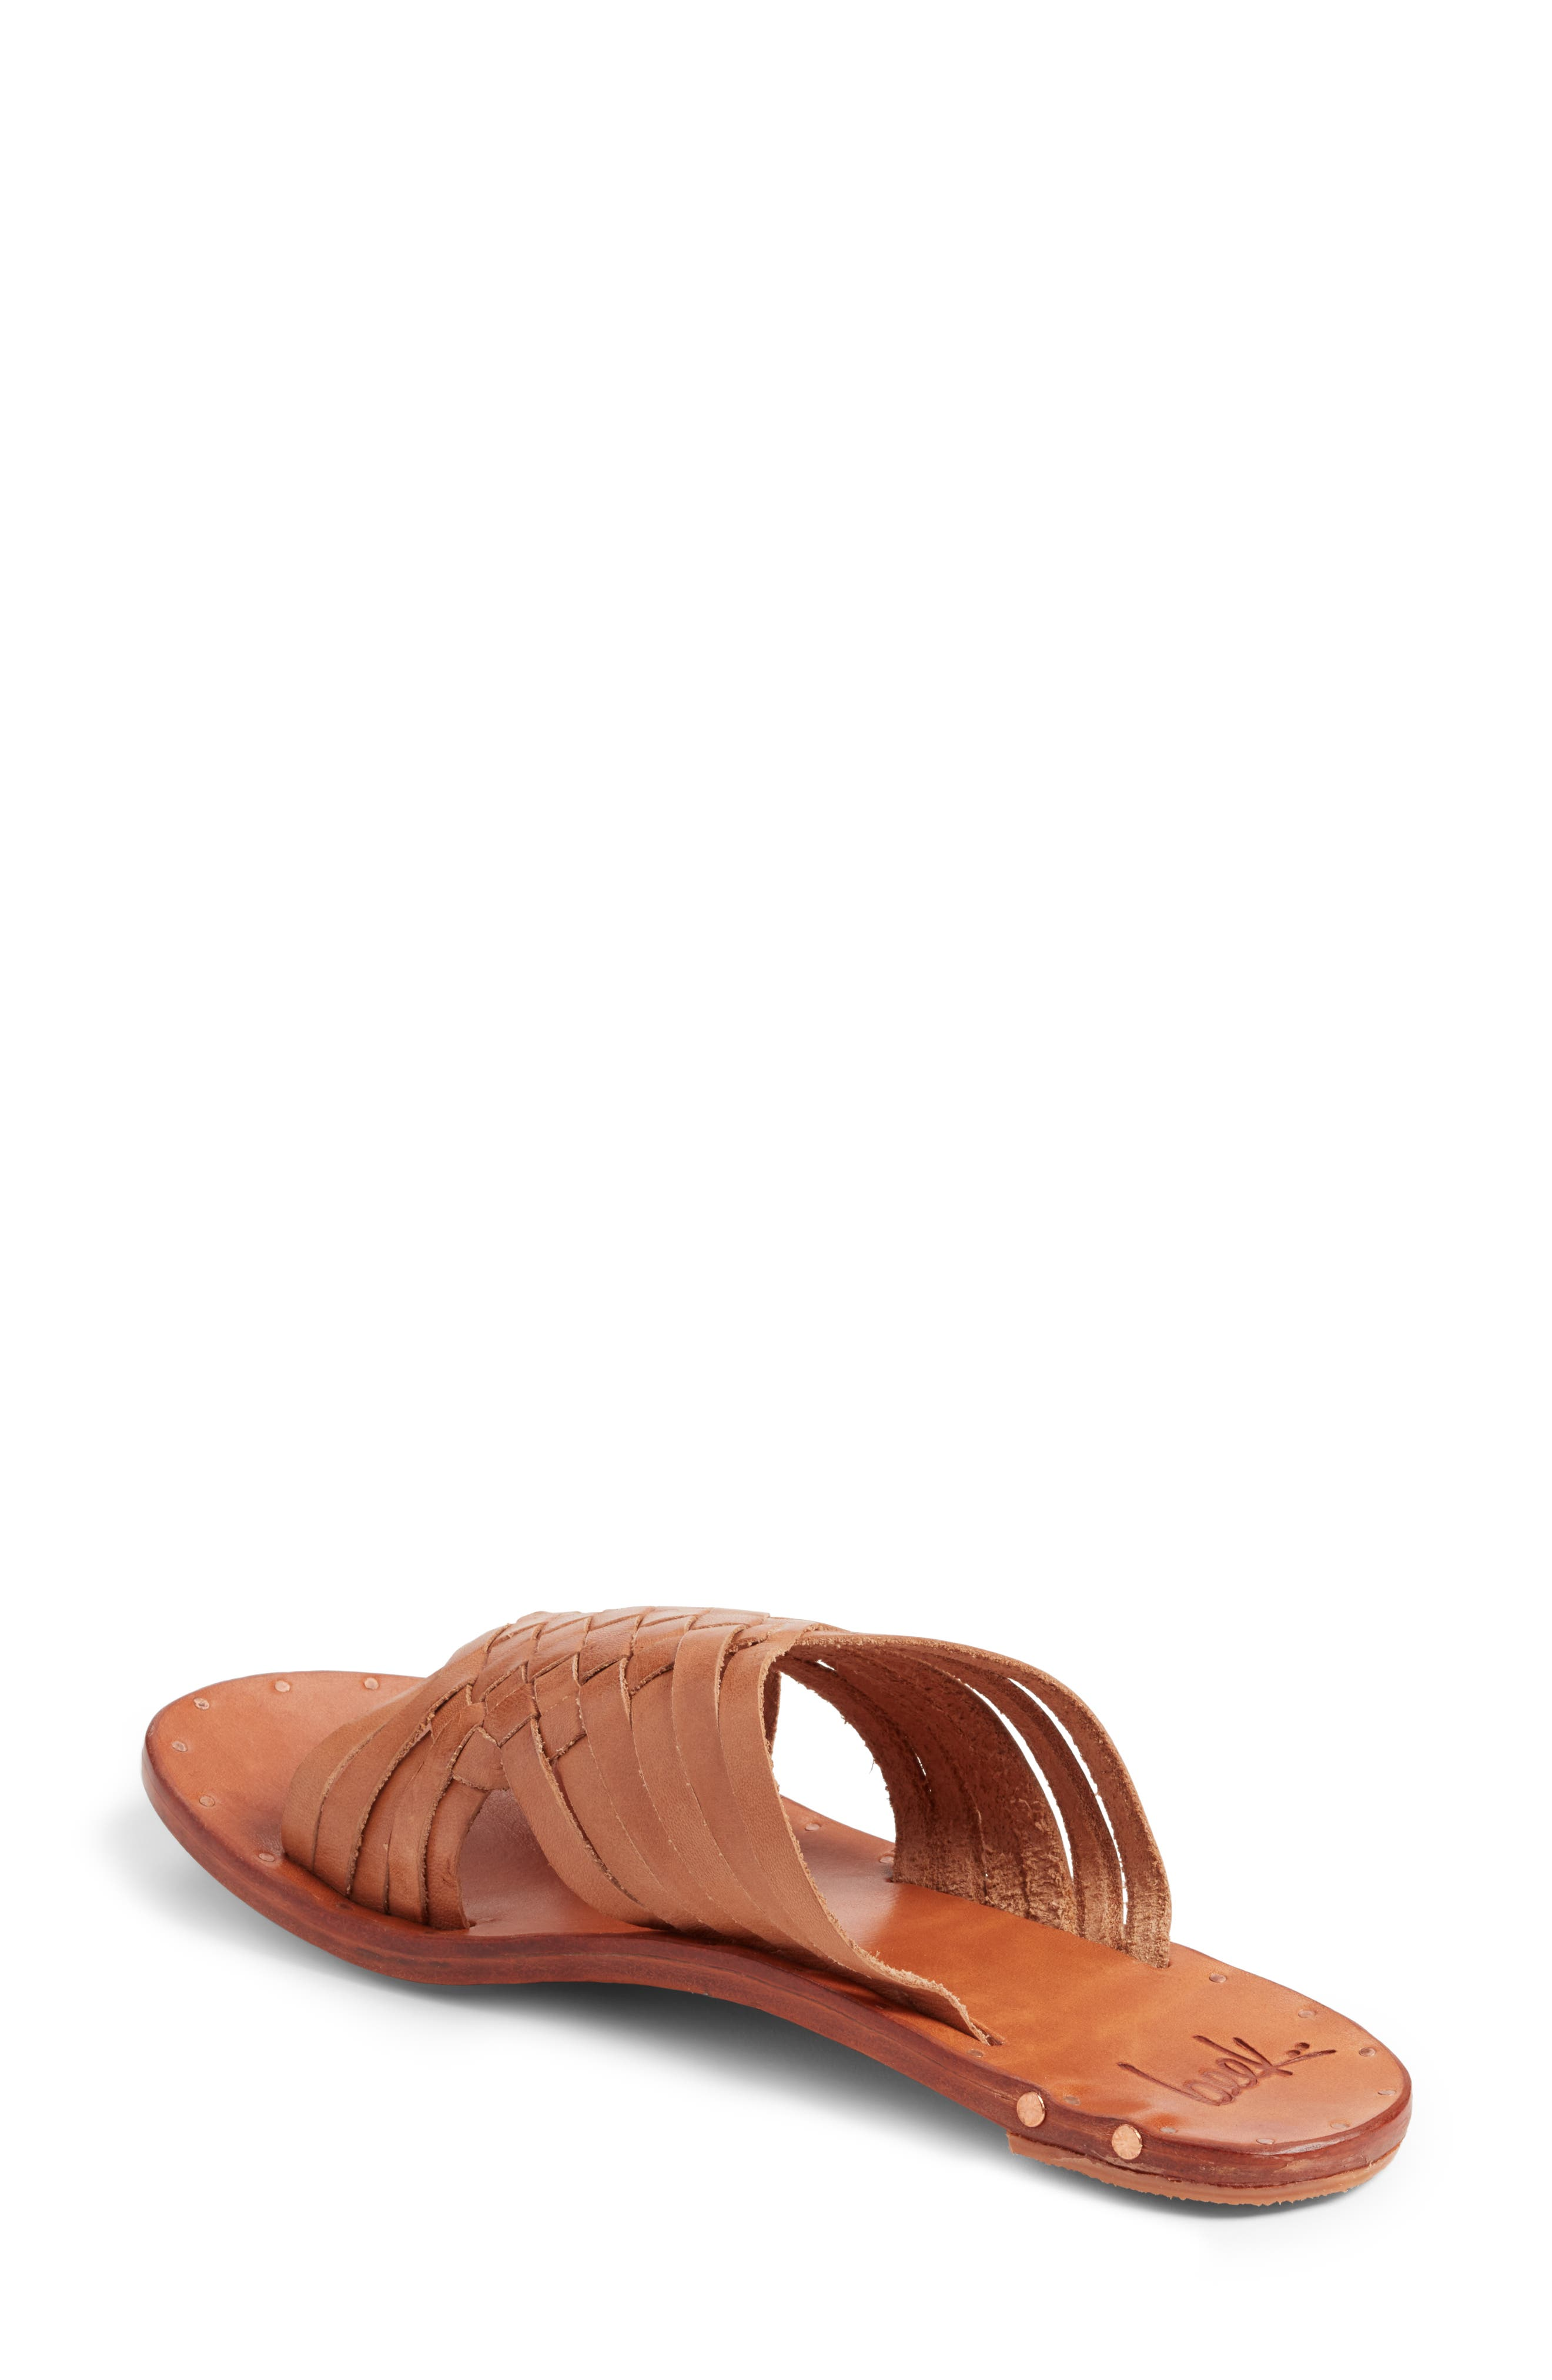 Alternate Image 2  - Beek Swallow Sandal (Women)